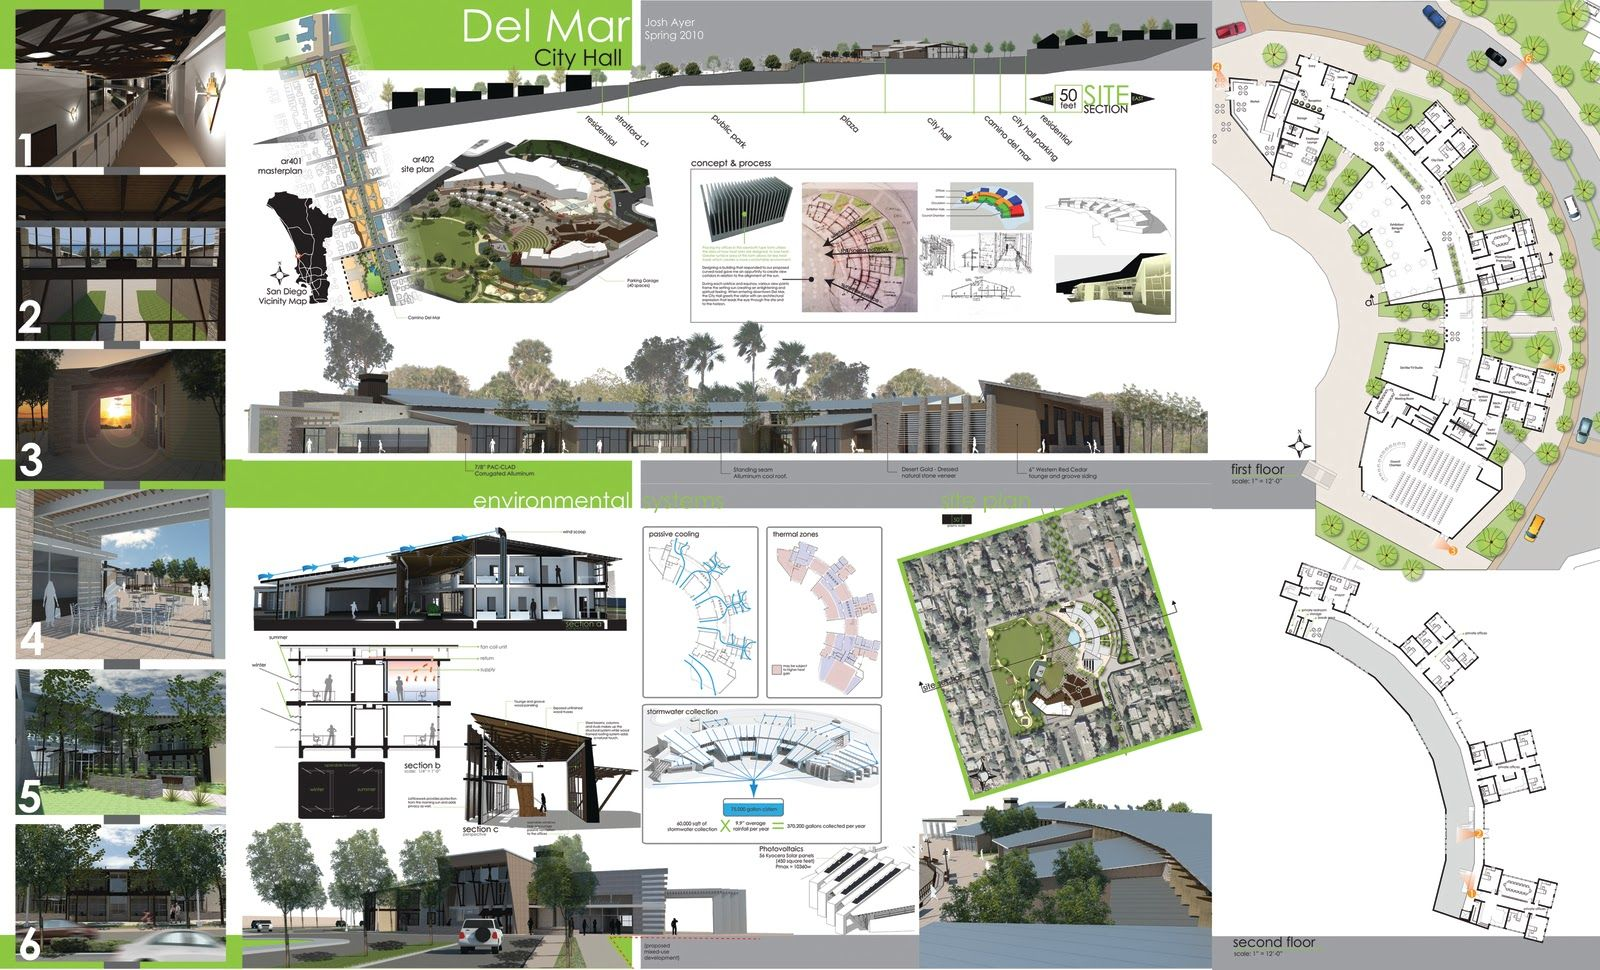 Architecture Design Presentation Sheets del mar proposed city plan. | architecture - plans | pinterest